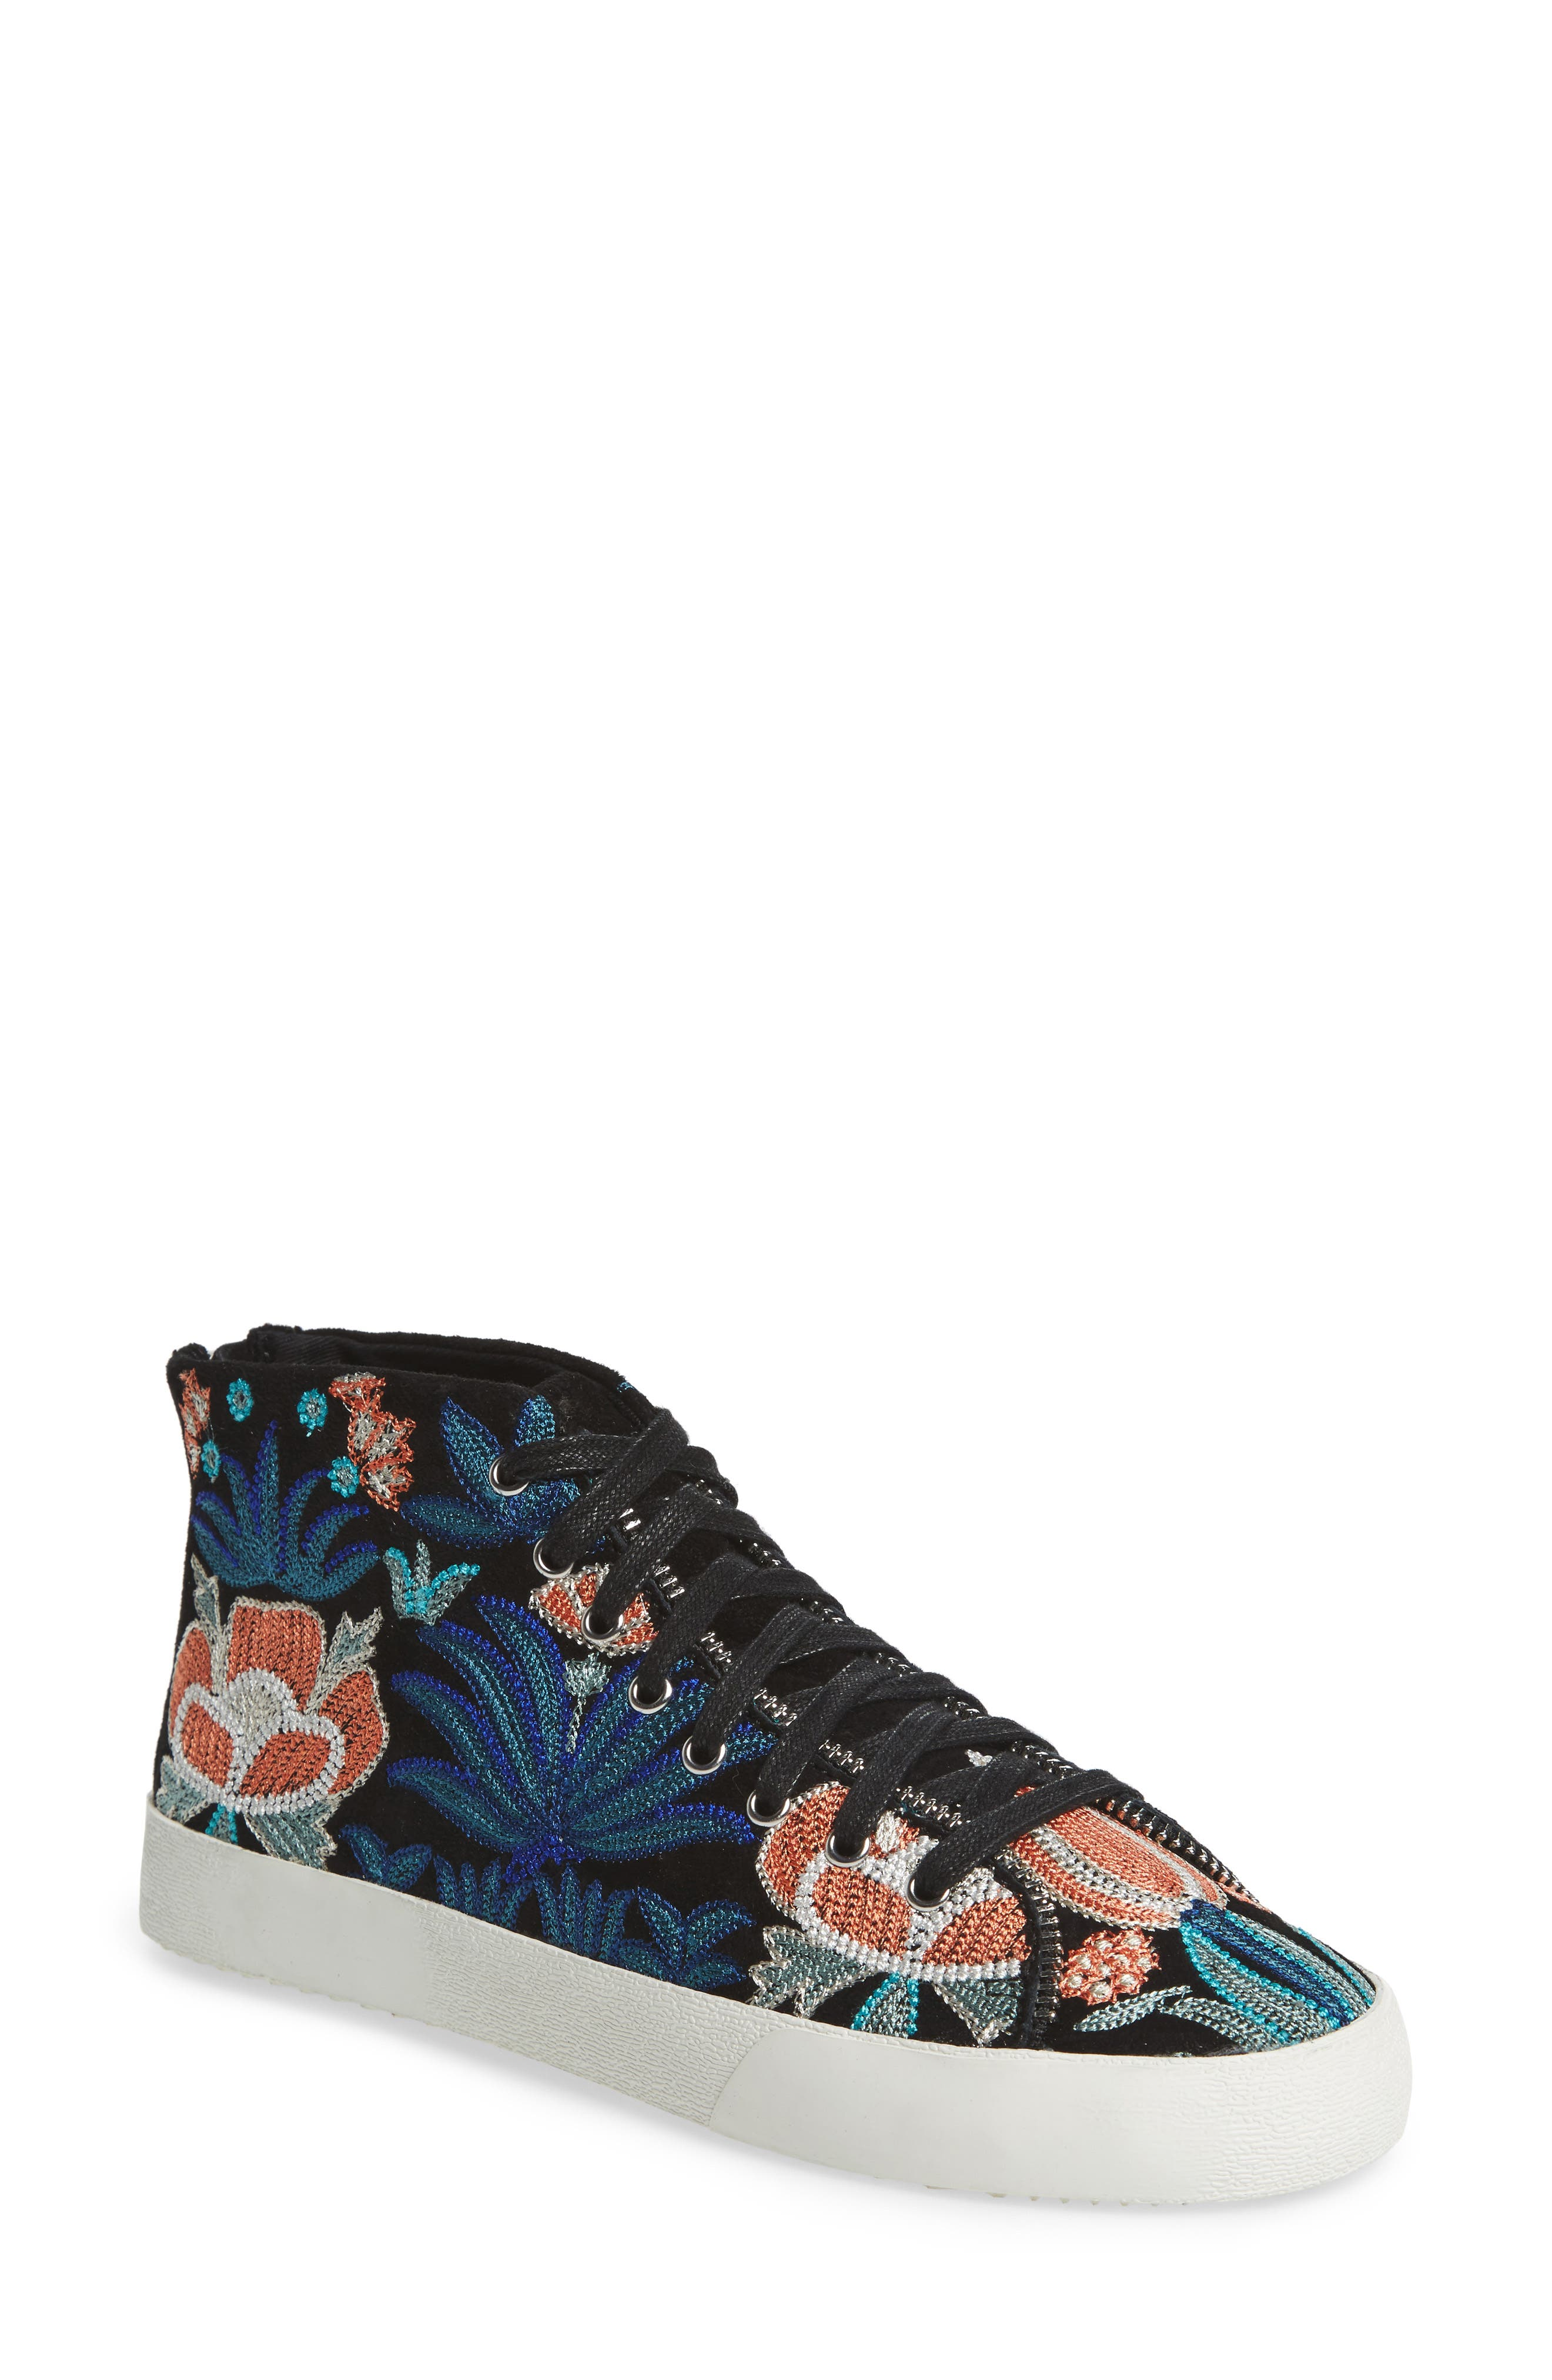 Zaina Embroidered Sneaker,                         Main,                         color, 004